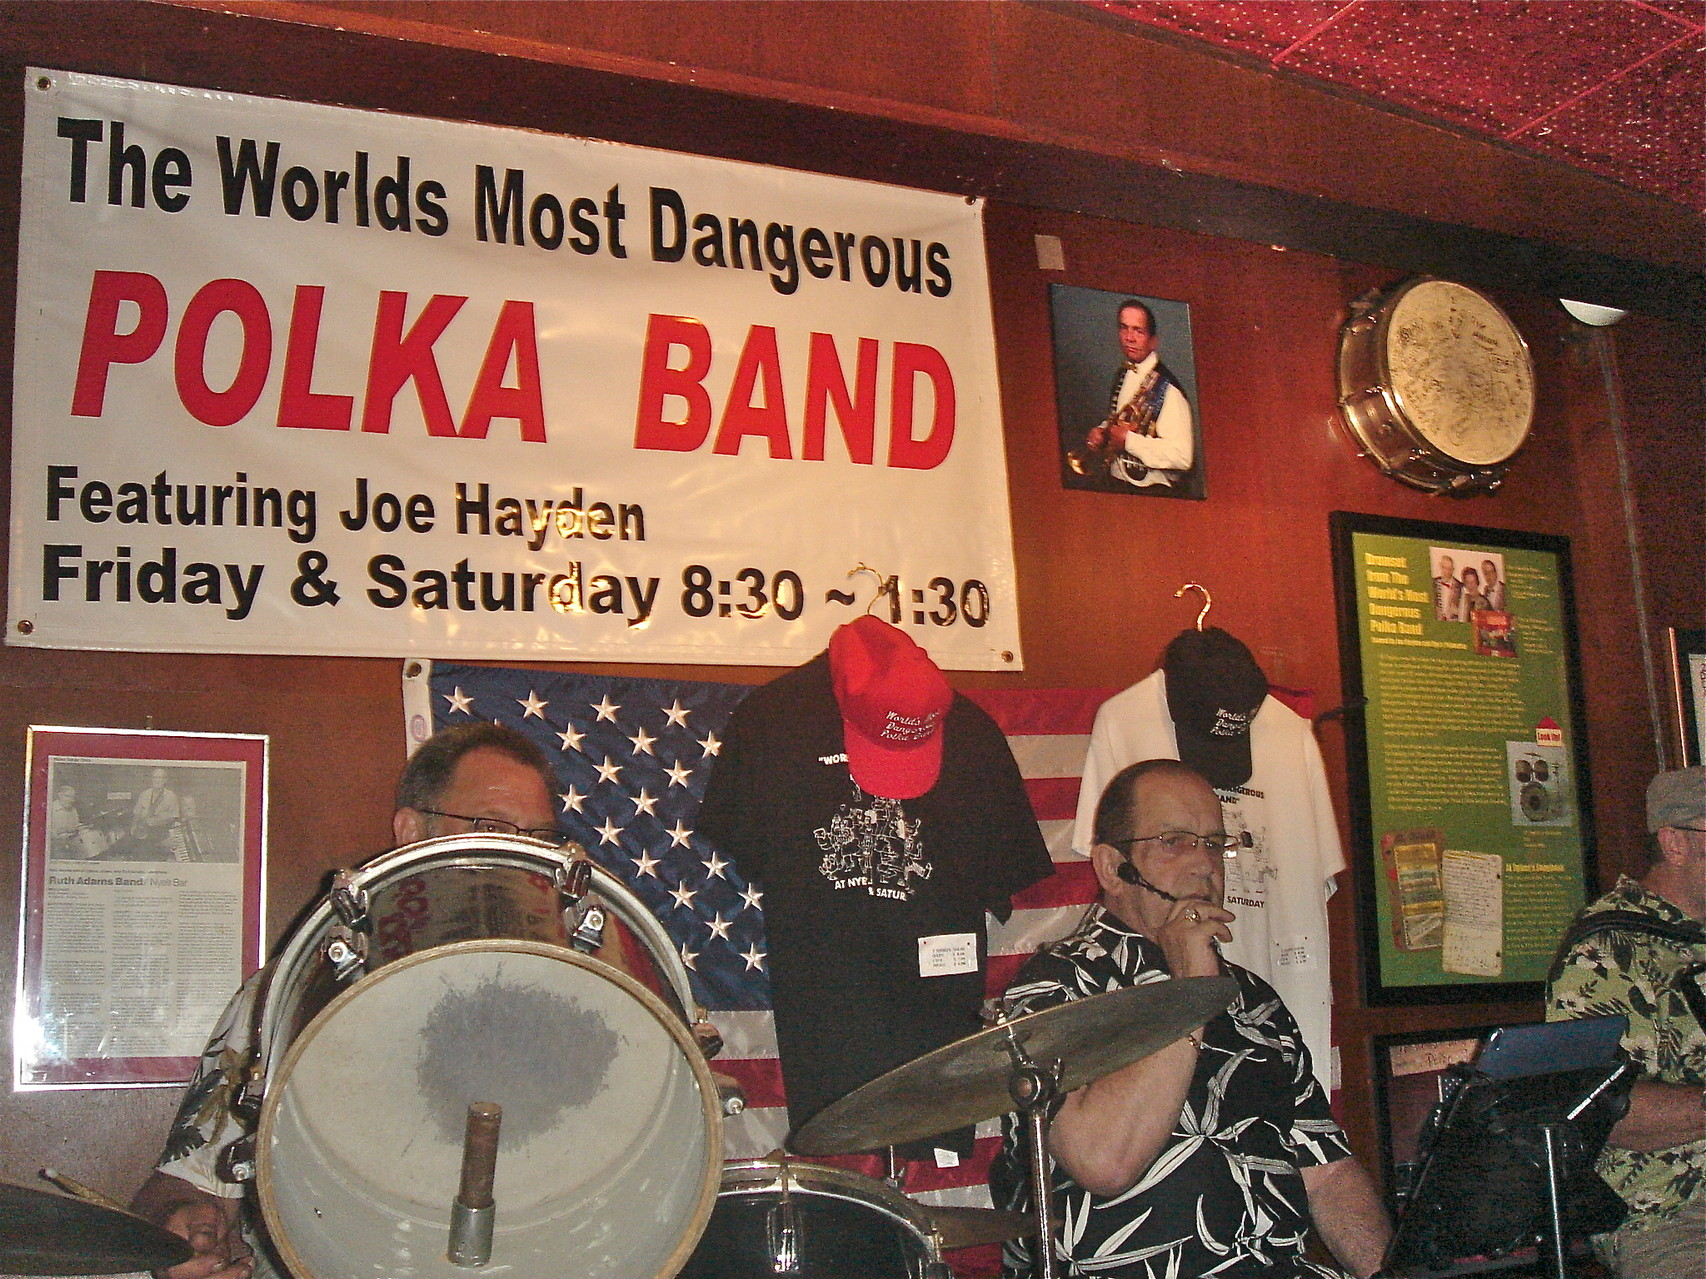 The Polka Band at Nye's